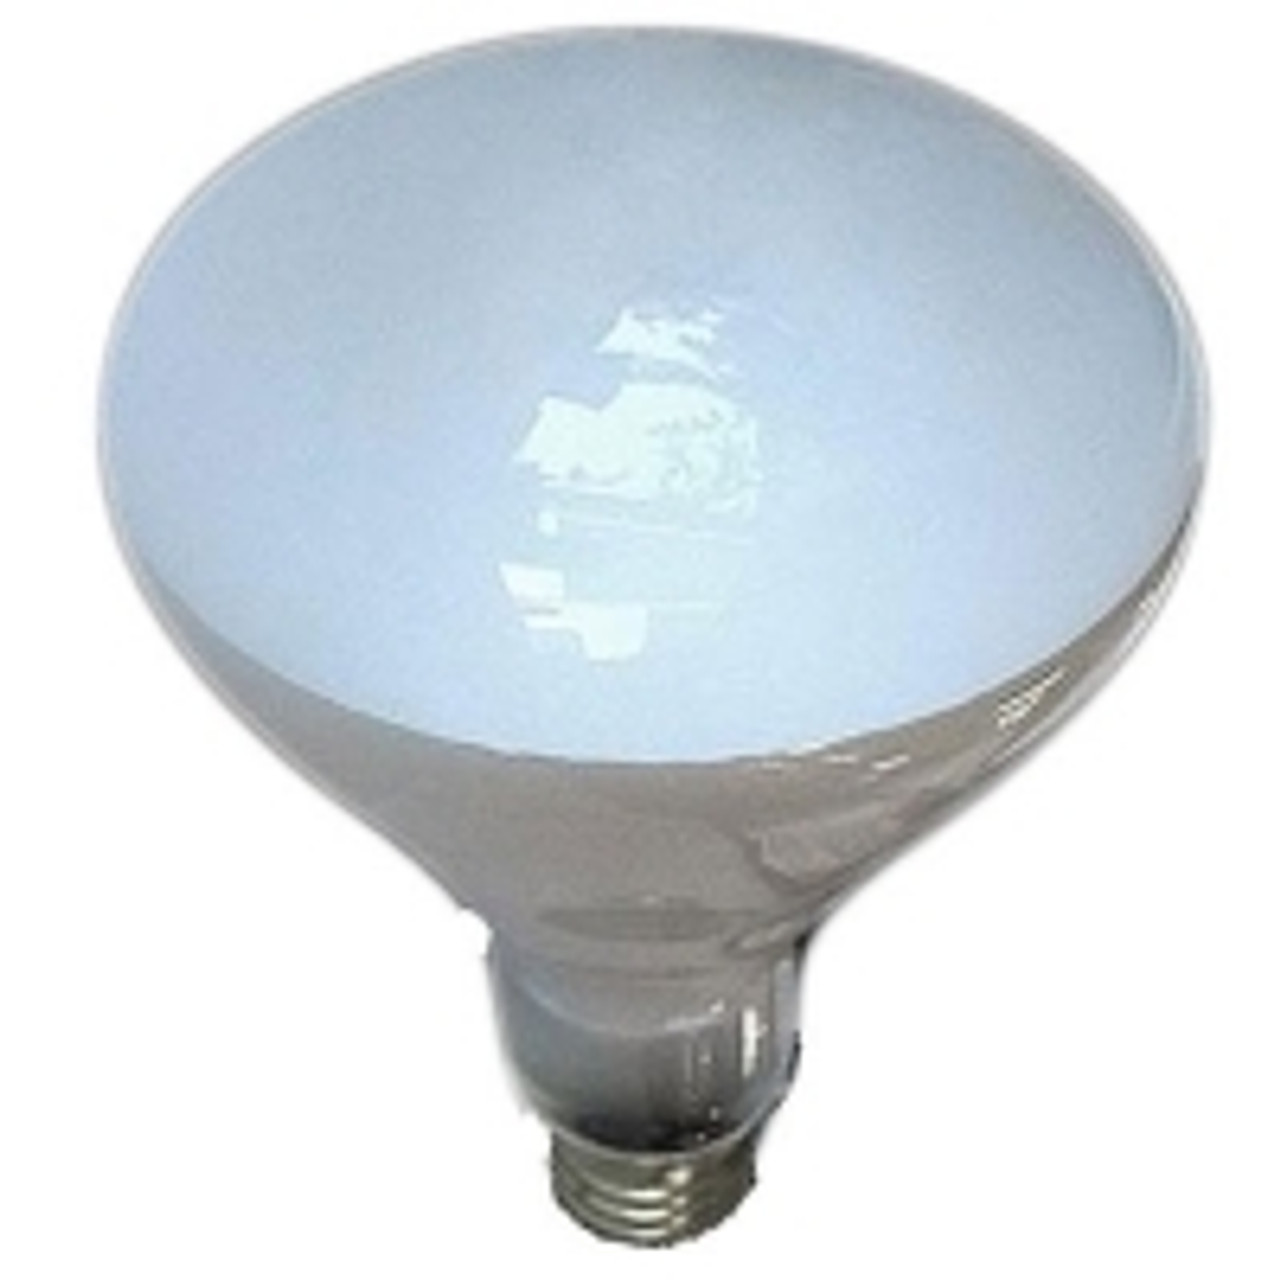 120v Reflector Light Bulbs